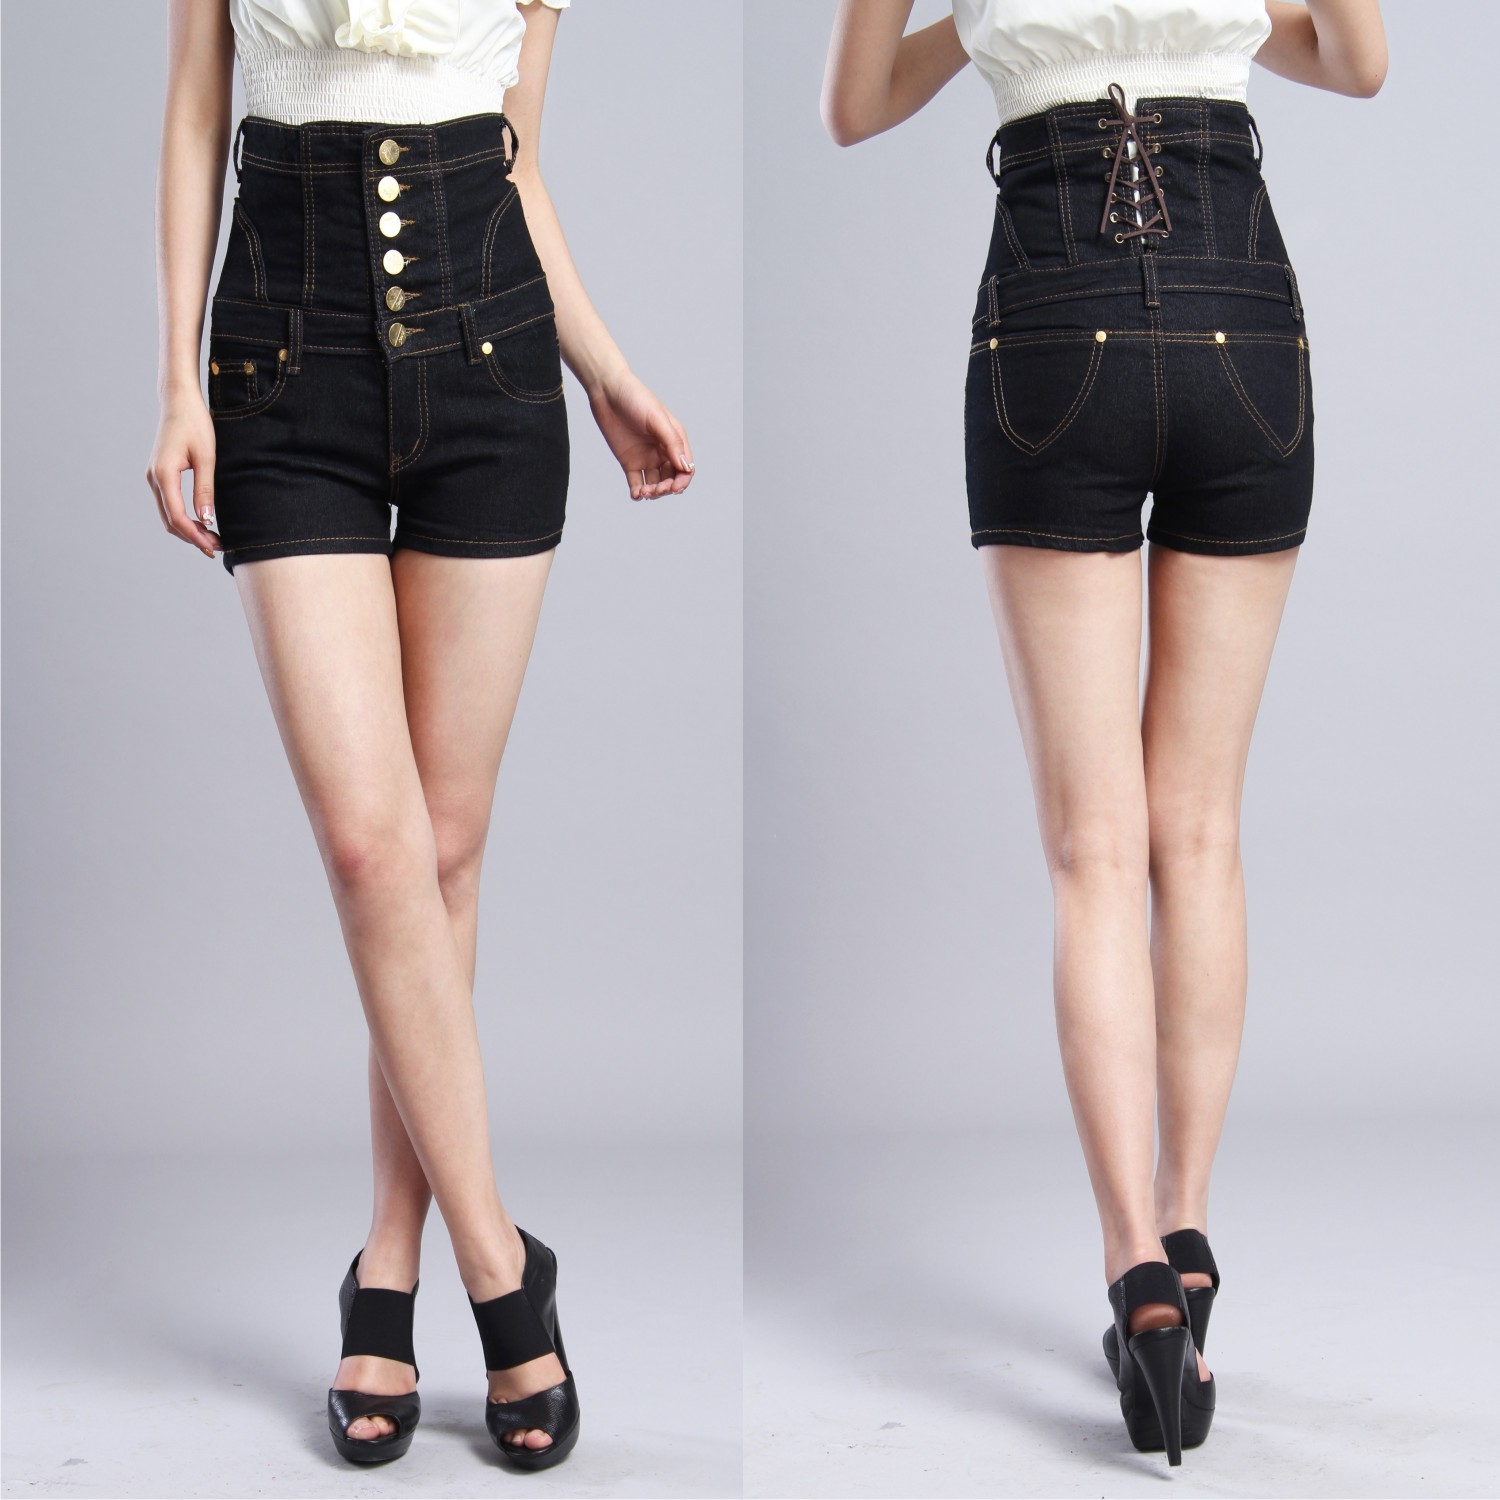 Aliexpress.com : Buy 2013 women's spring plus size high waist denim shorts female mm from Reliable denim high waisted shorts suppliers on Online Store 426006.